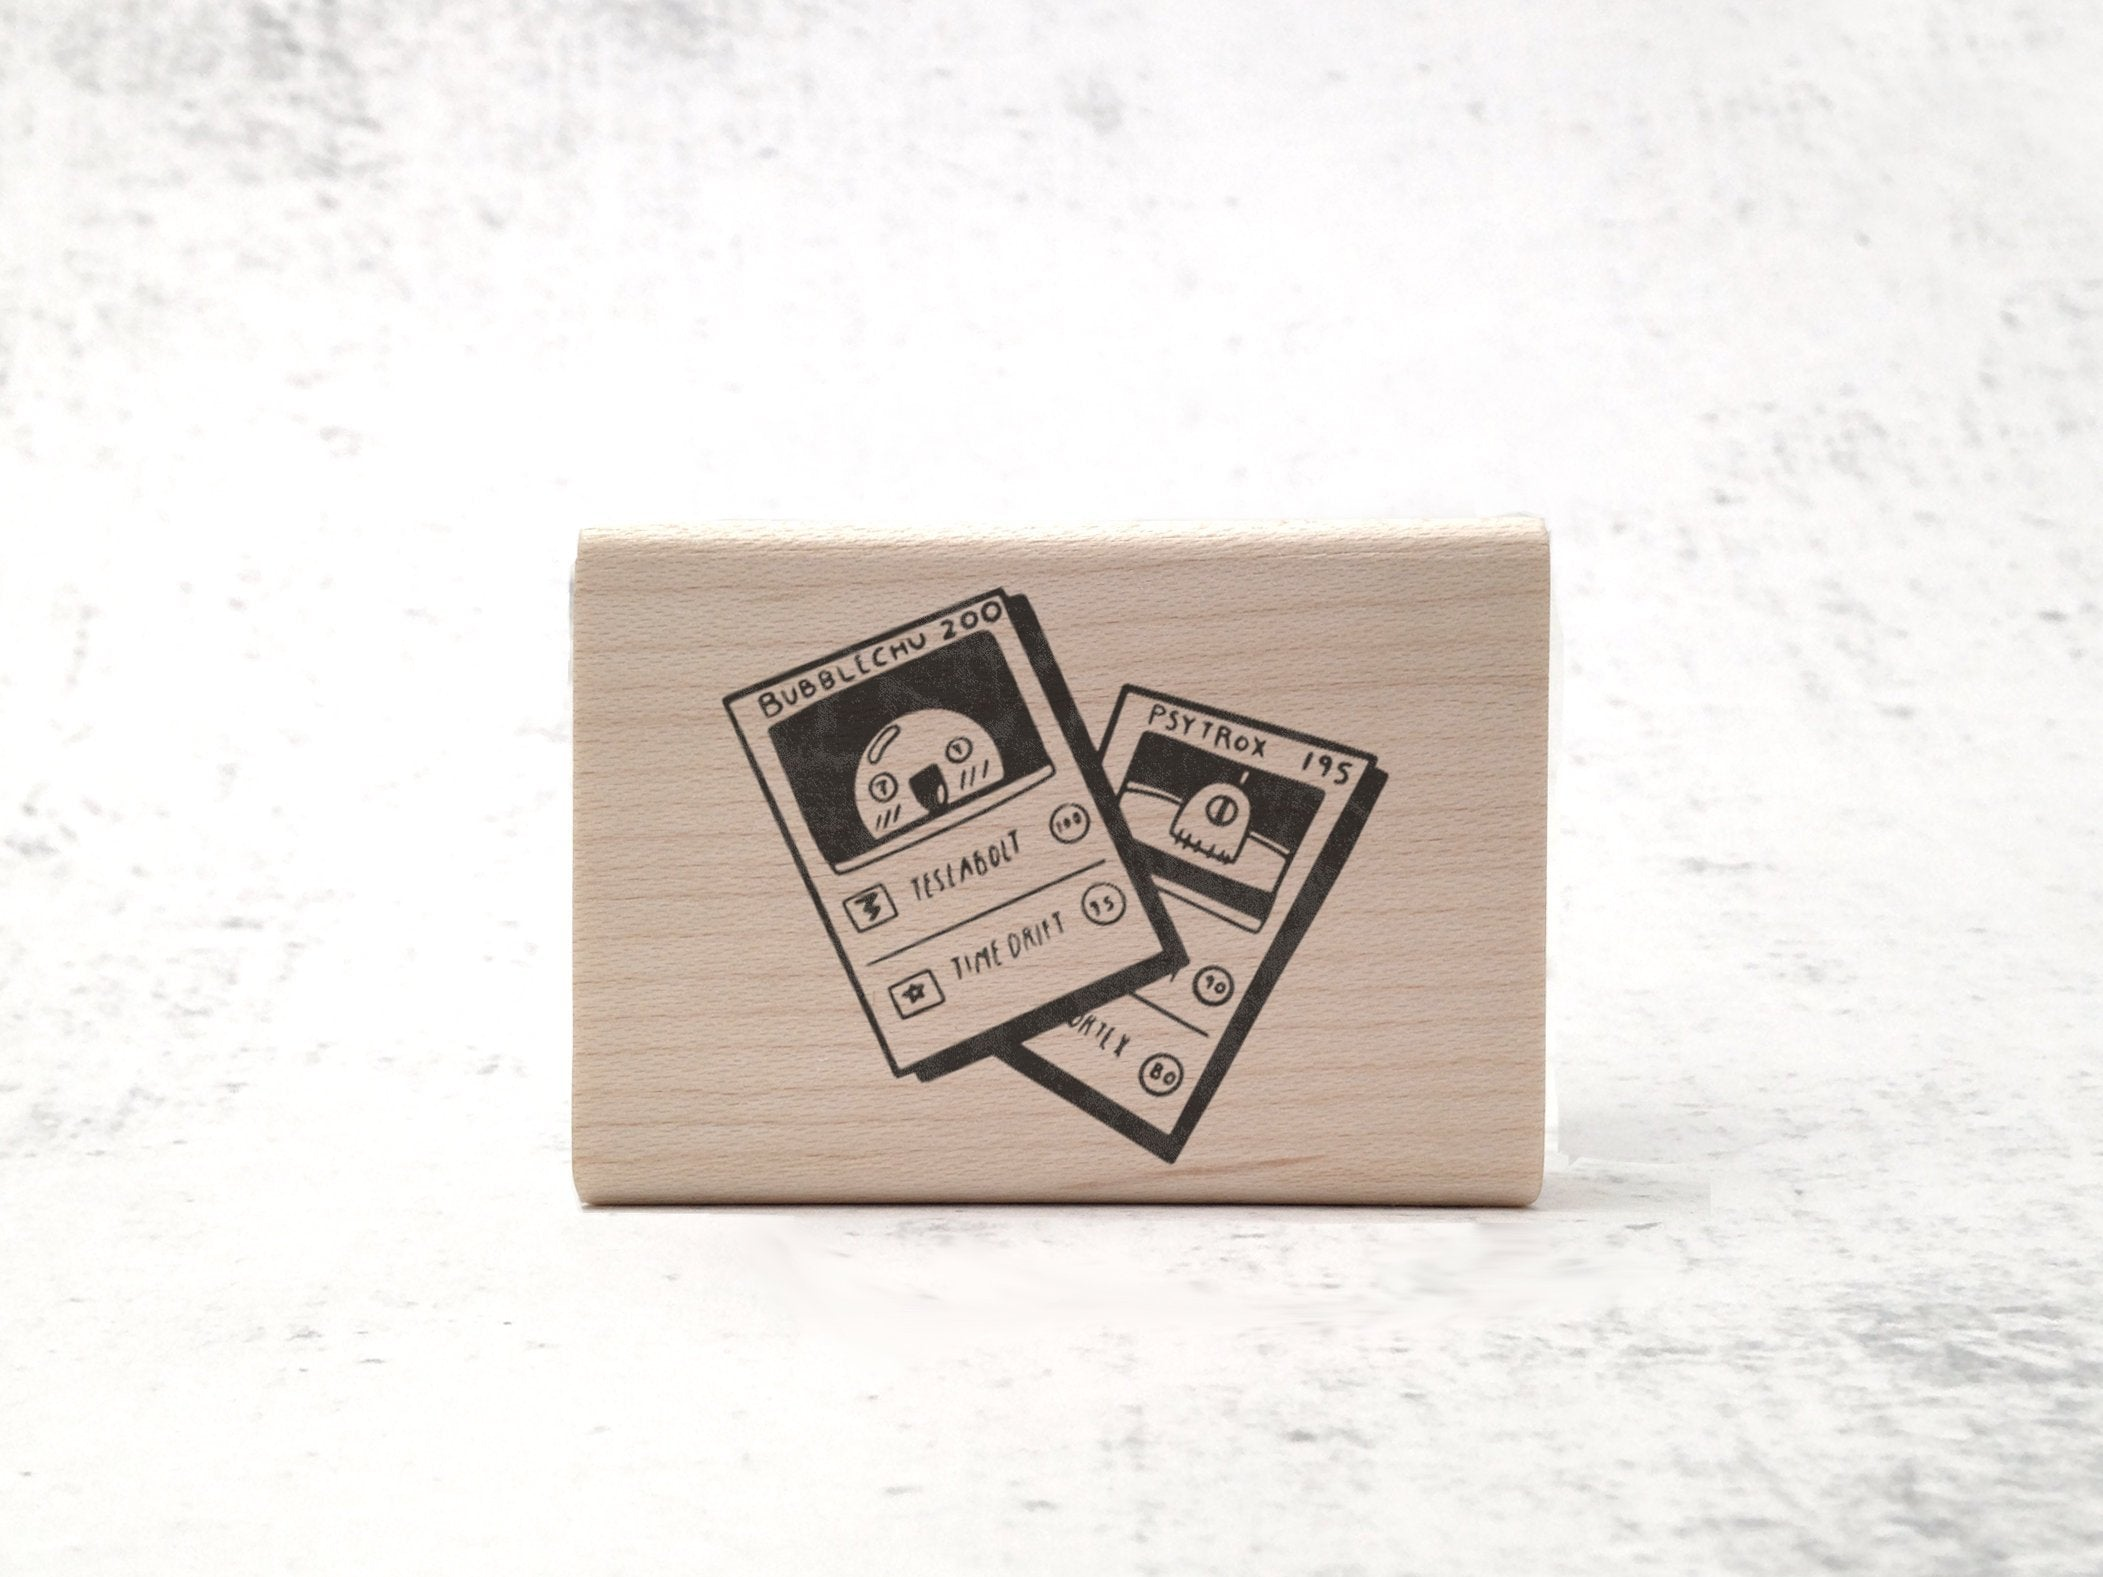 Bubblechu Creature Card Rubber Stamp - Card Game / Gaming Stamp - 90's Aesthetic Rubber Stamp